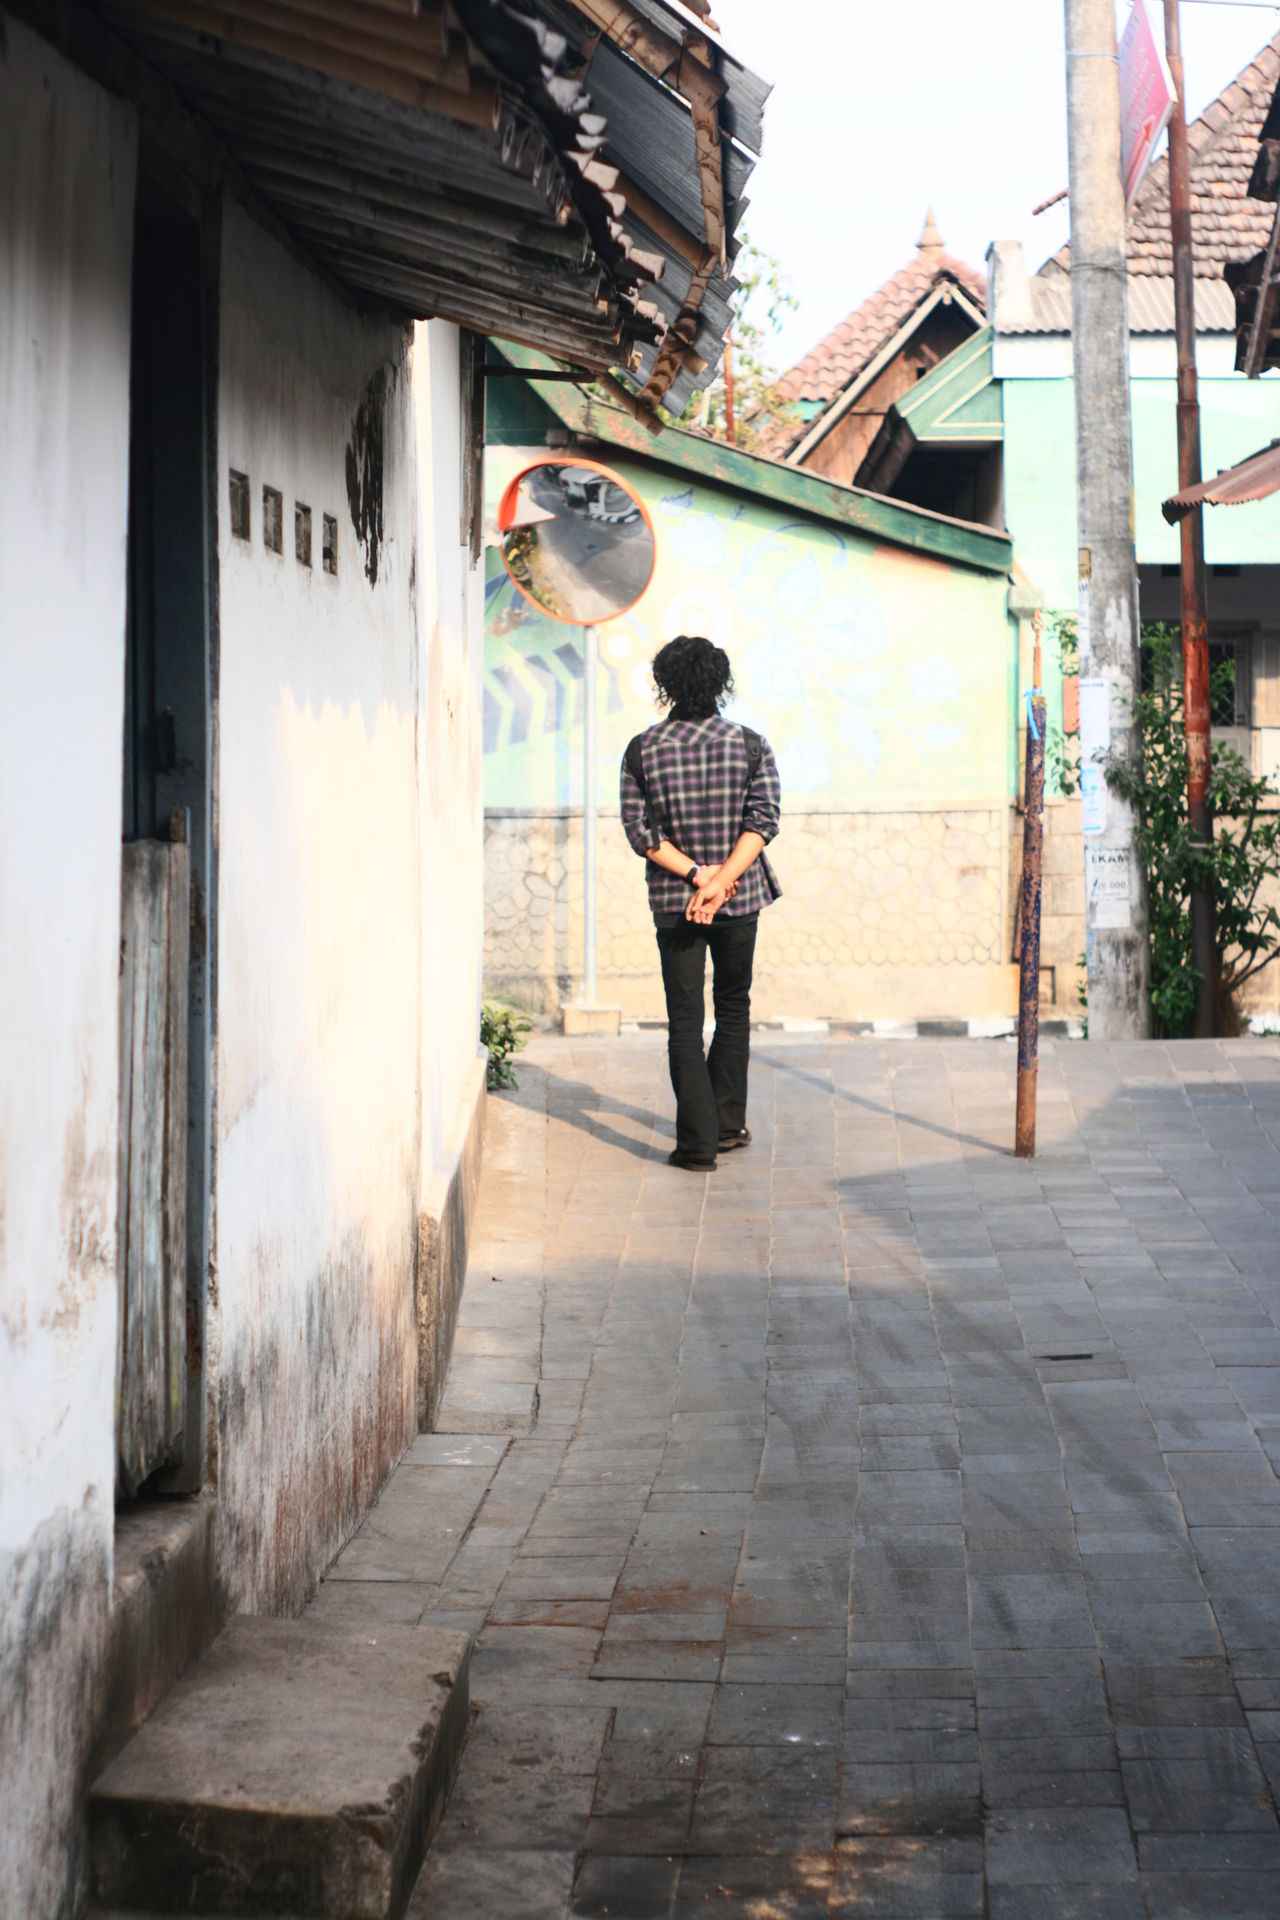 Adult Architecture Authentic Building Exterior Built Structure City Culture Day Full Length Lifestyles Men One Person Outdoors People Real People Rear View Standing Street Street Village Yogyakarta